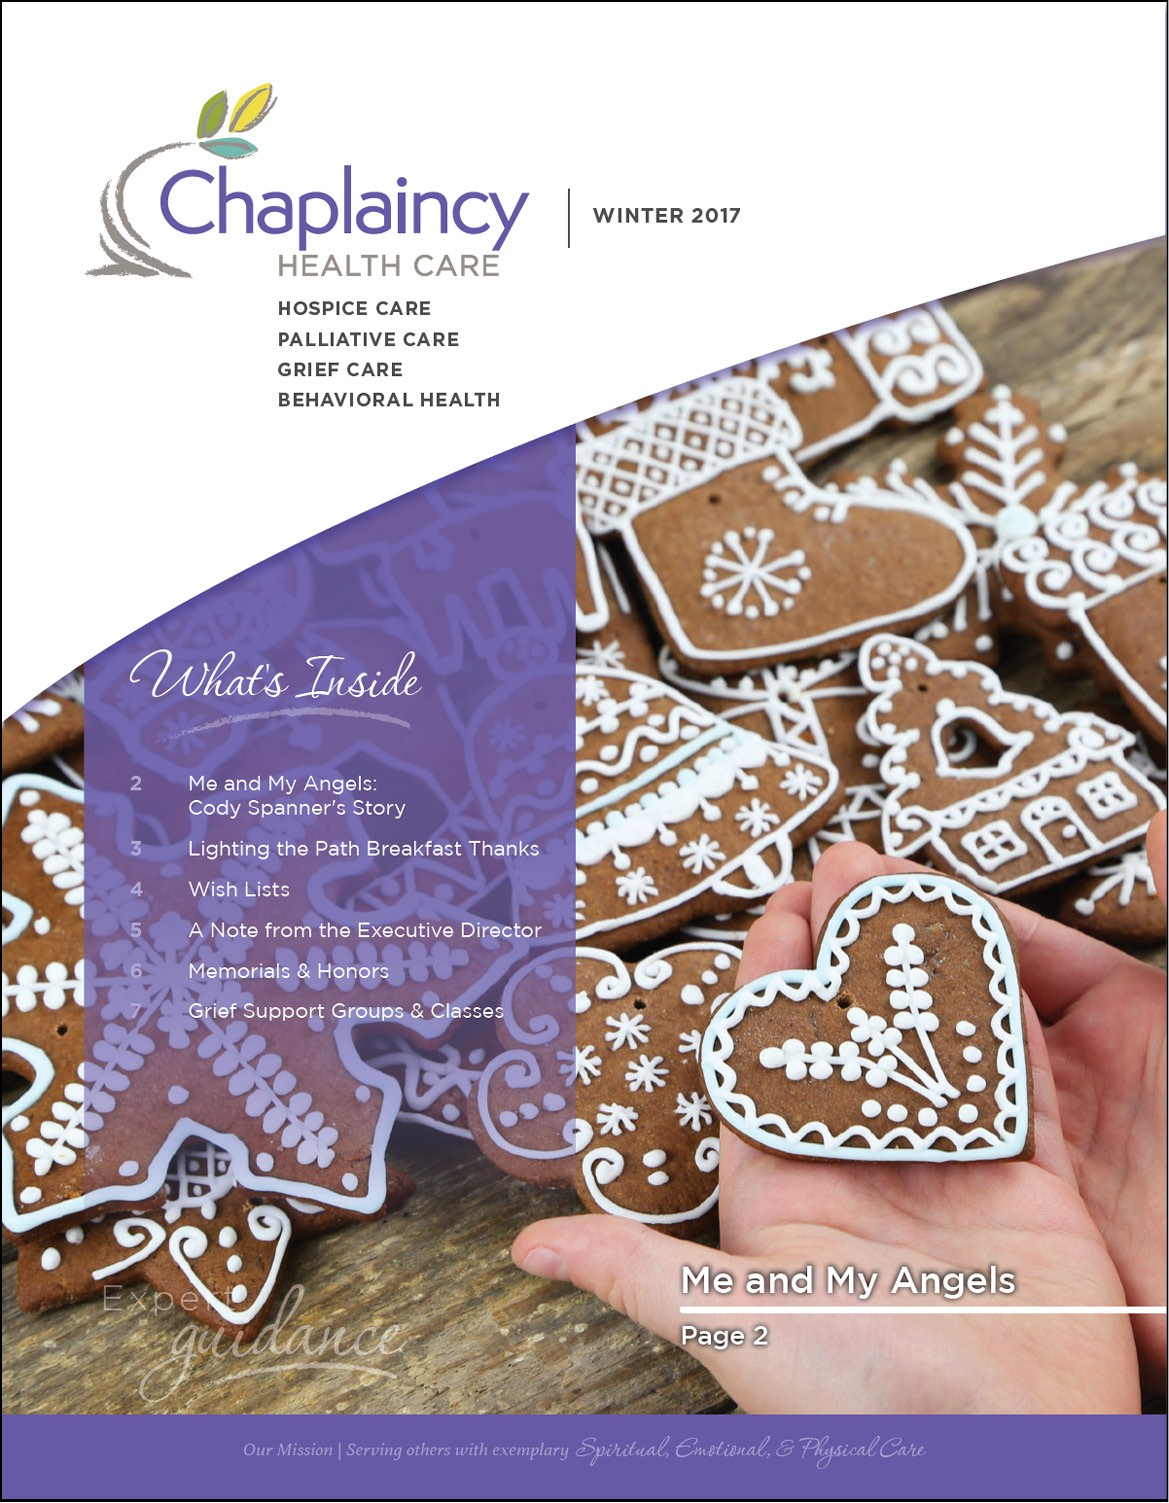 Chaplaincy Health Care Winter Newsletter